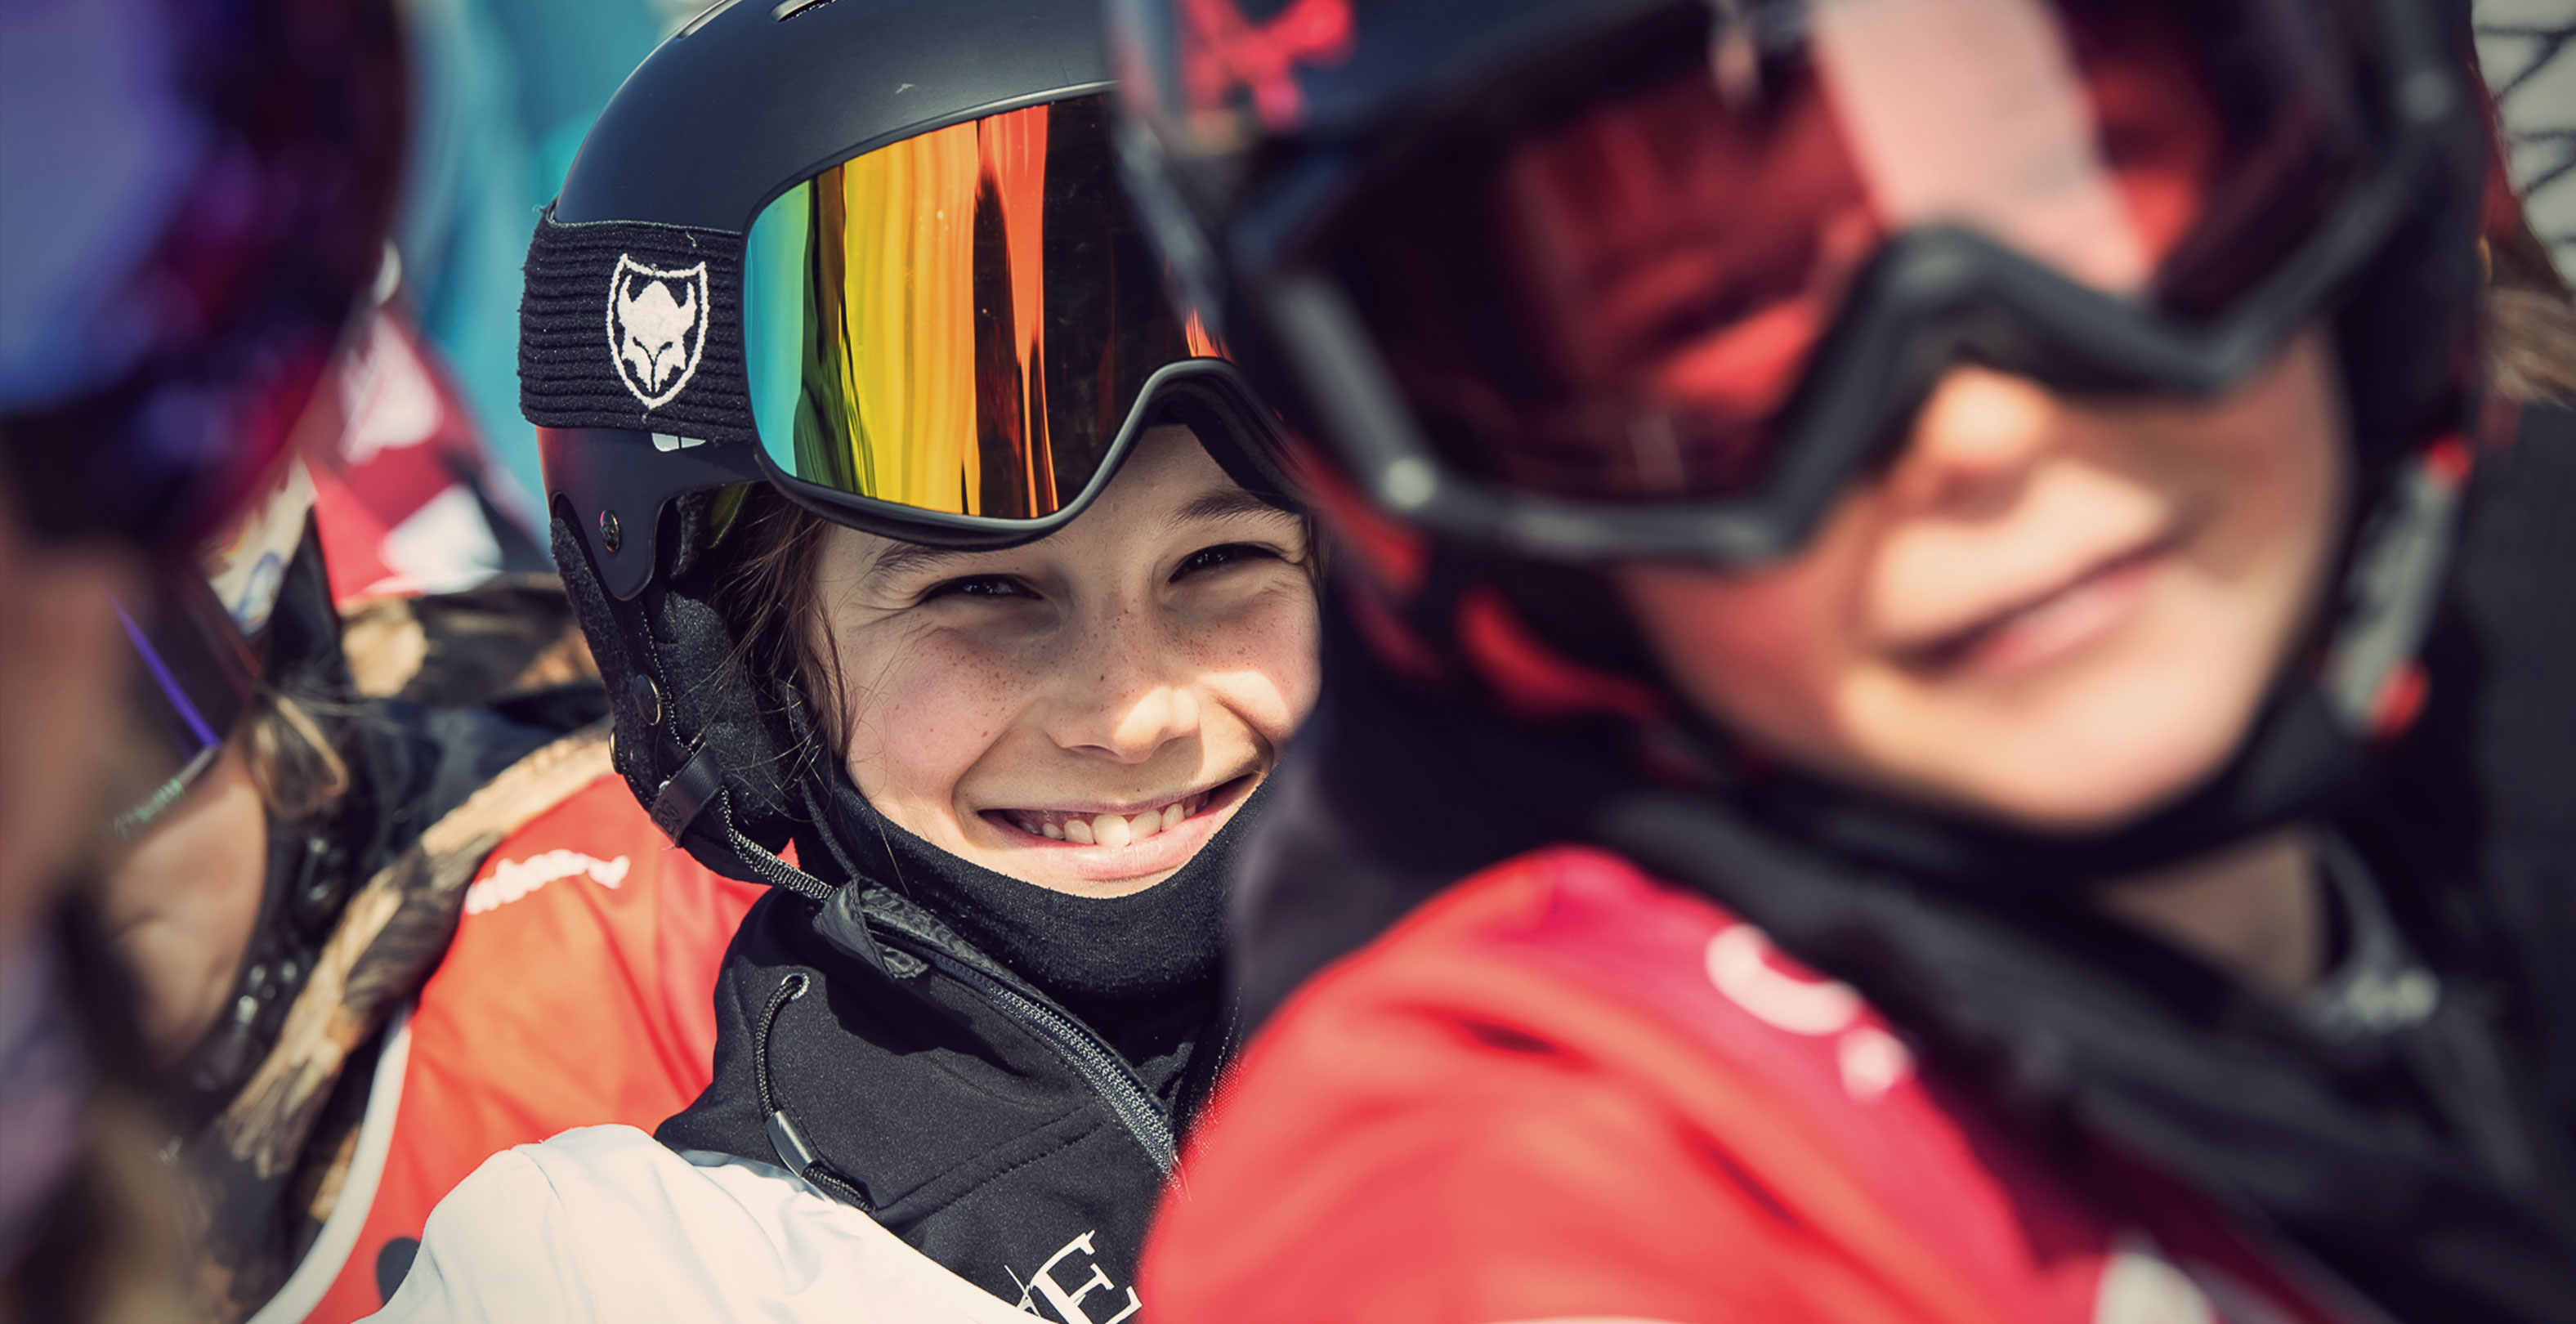 TSG kids, Mischa Zuercher, Expect Goggle, smiling kid